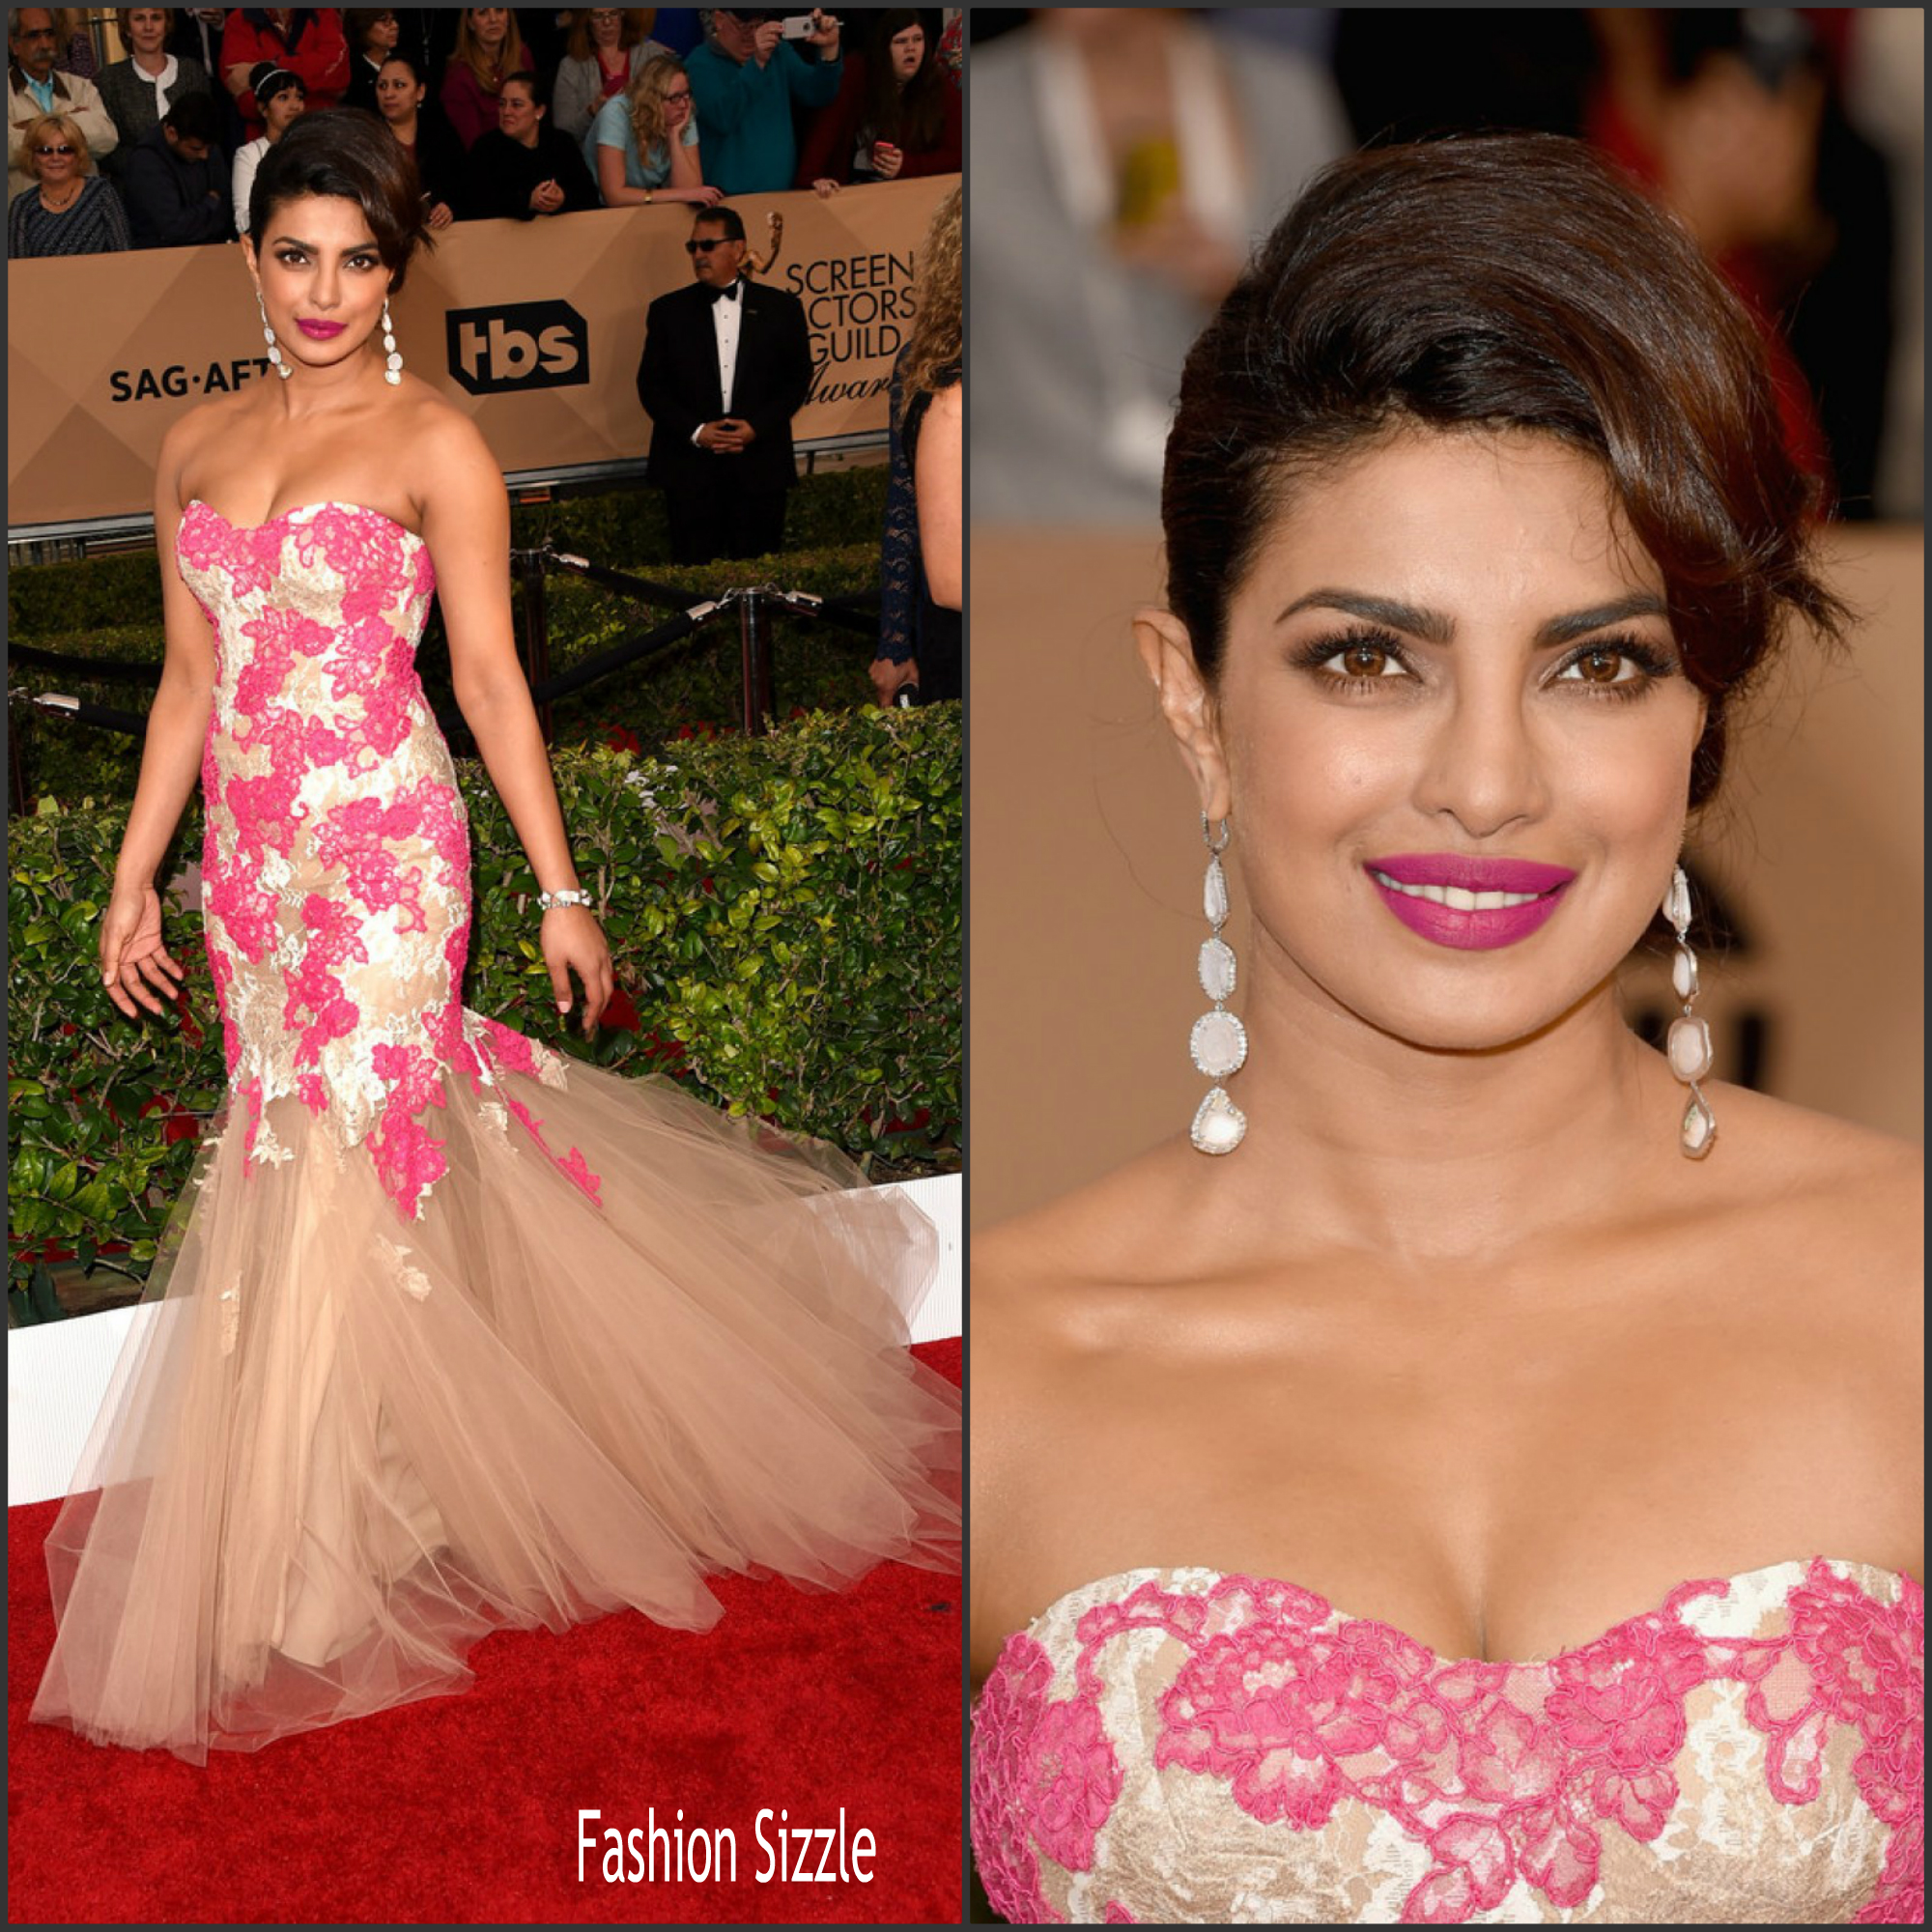 priyaanka-chopra-in-monique-lhuillier-2016-screen-actors-guild-awards